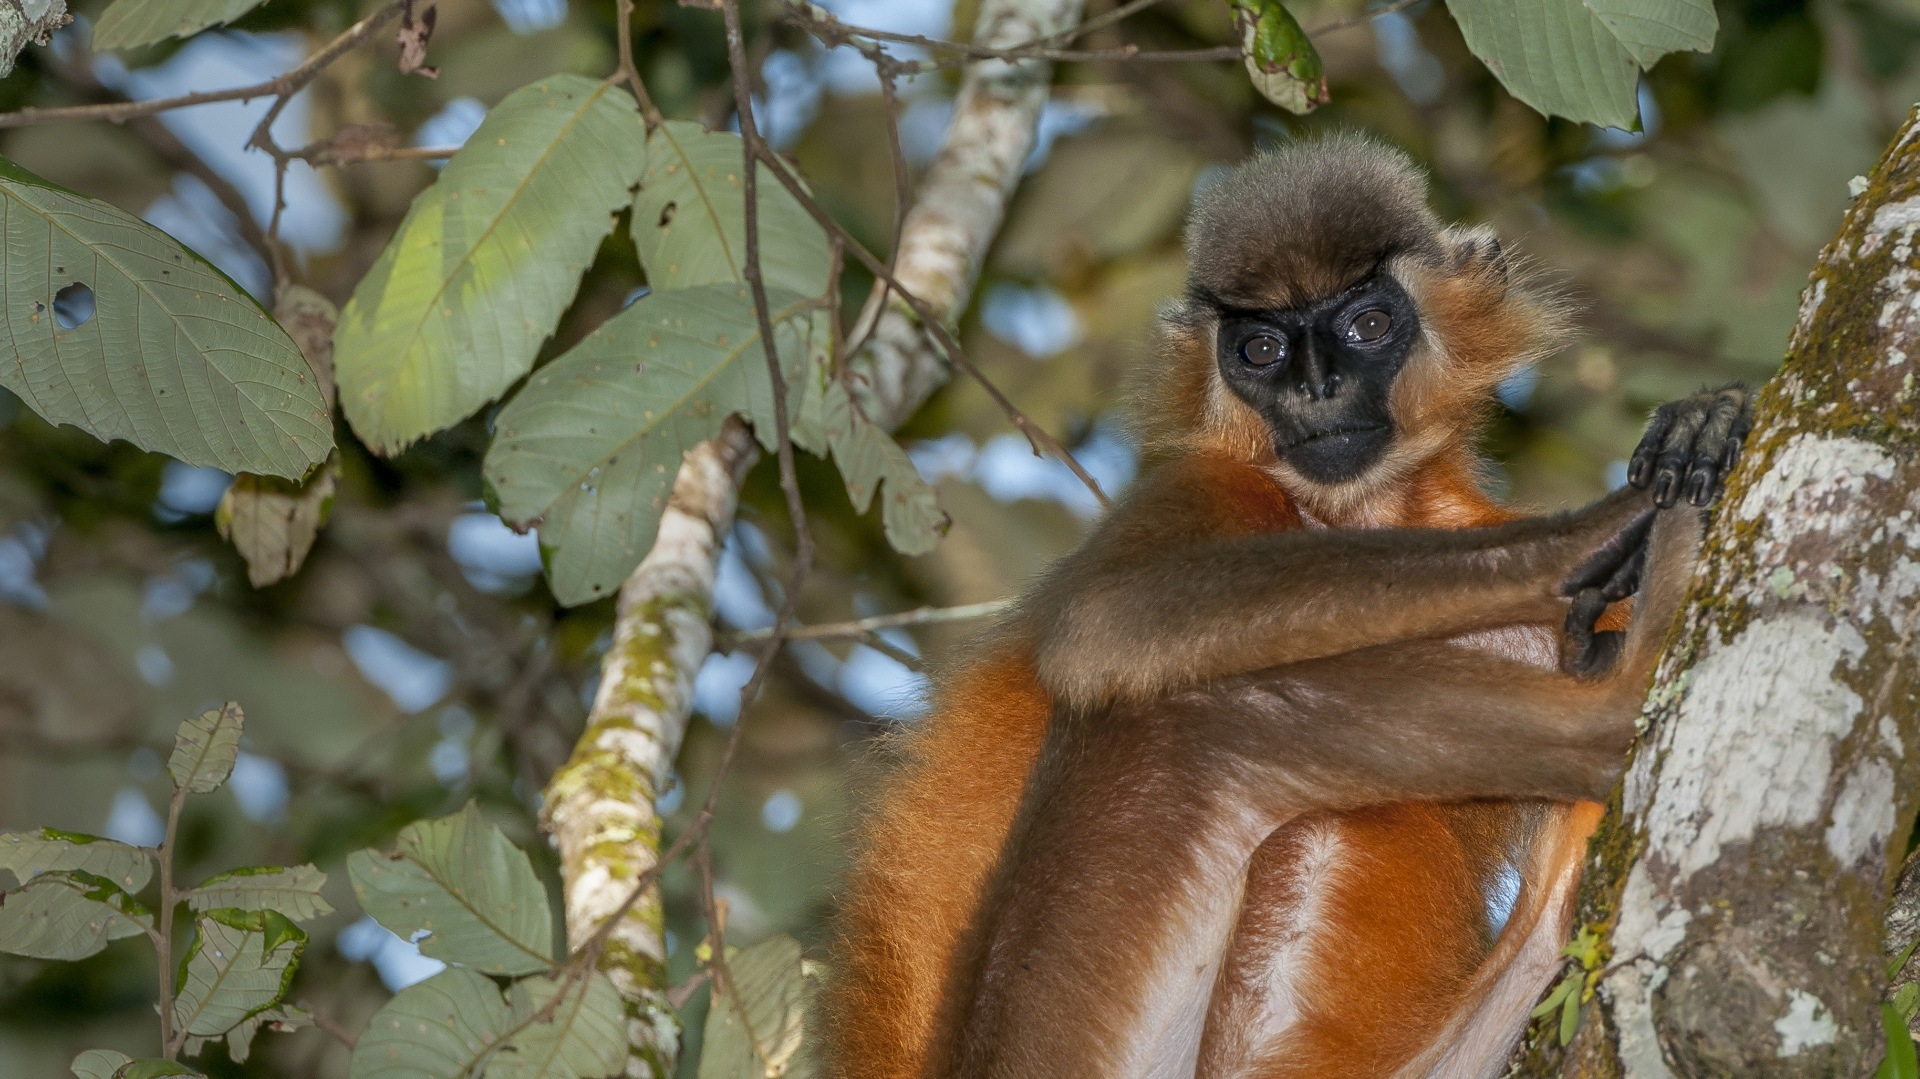 The Monkey with a Beanie: The Capped Langurs of Hollongapar